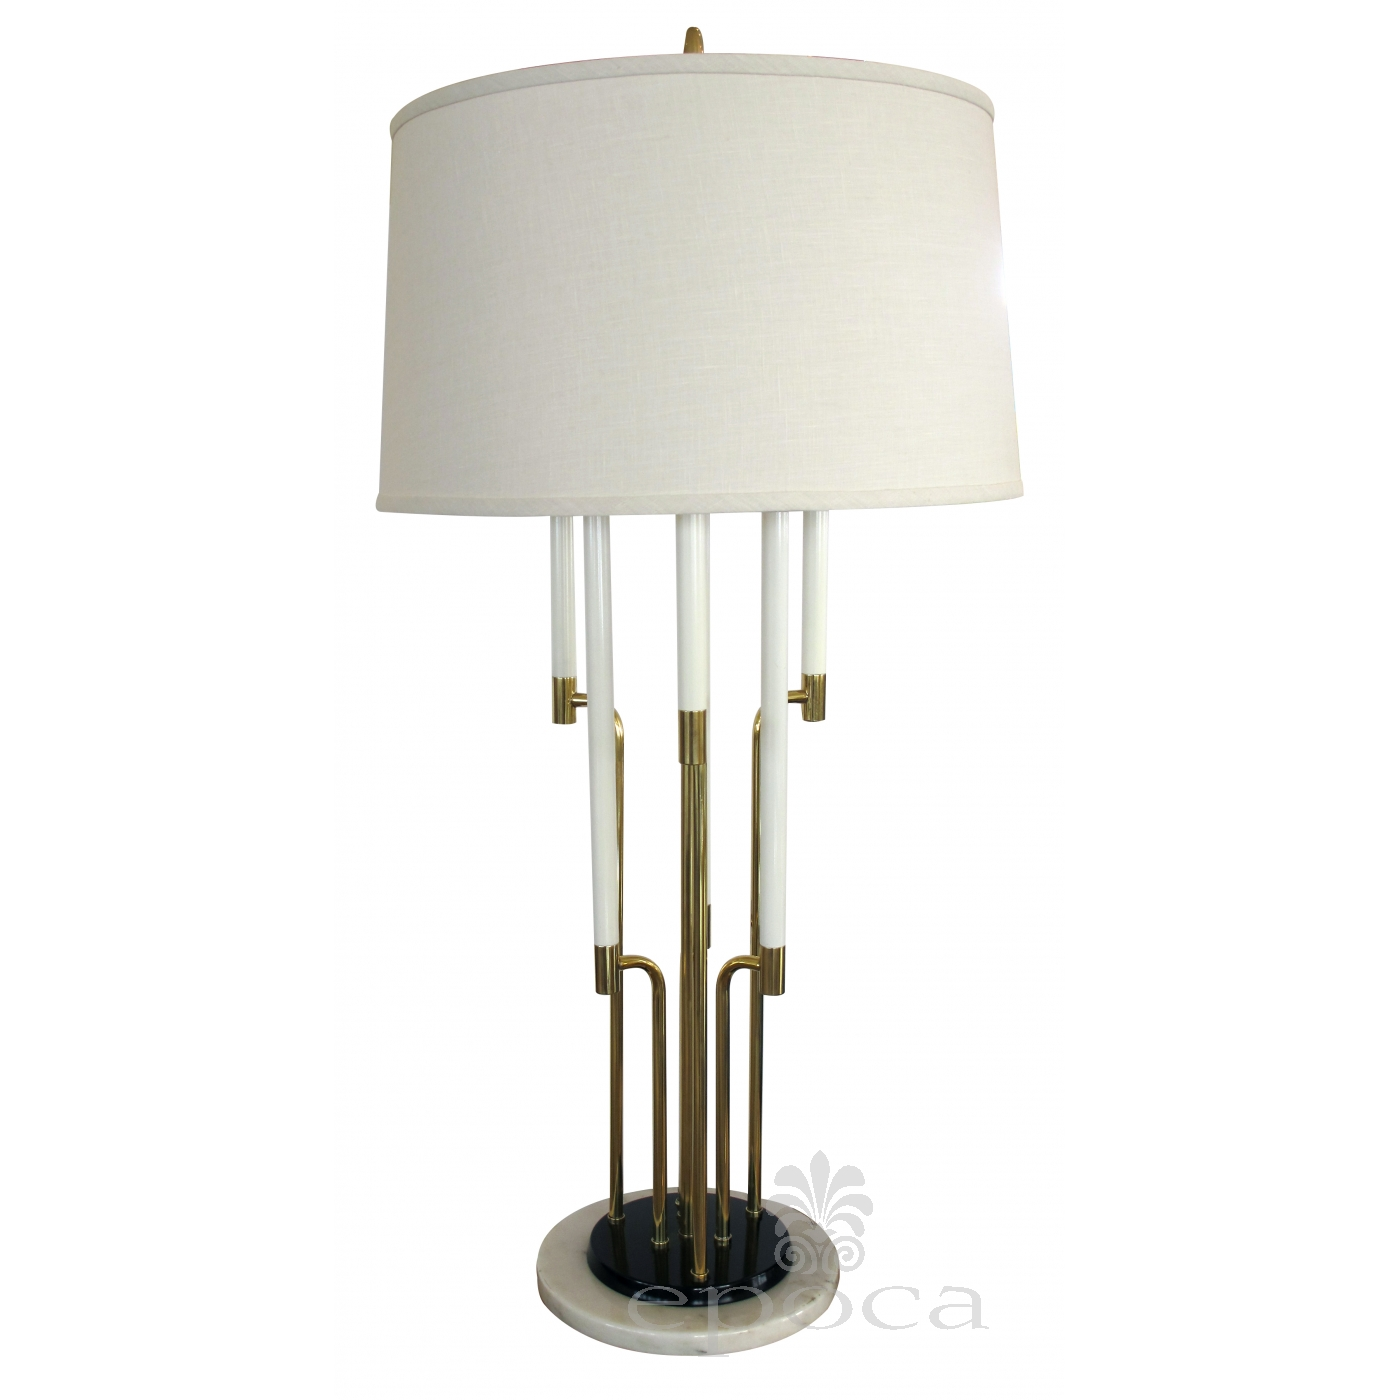 A Chic American Tommi Parzinger 1950s 6 Light Brass Table Lamp With Marble Base